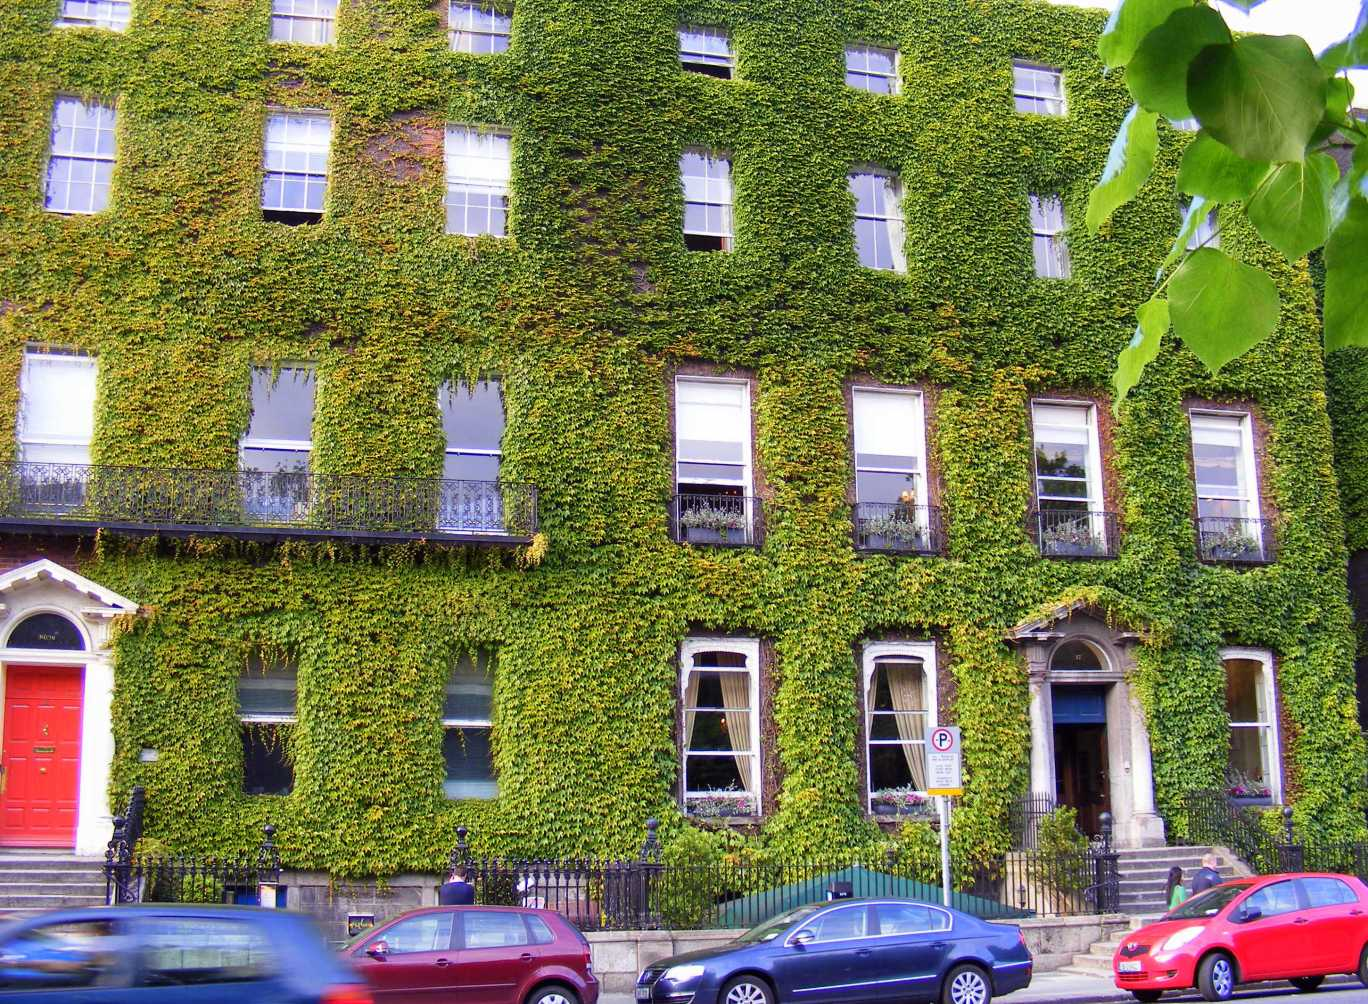 Ivy on St Stephen's Green